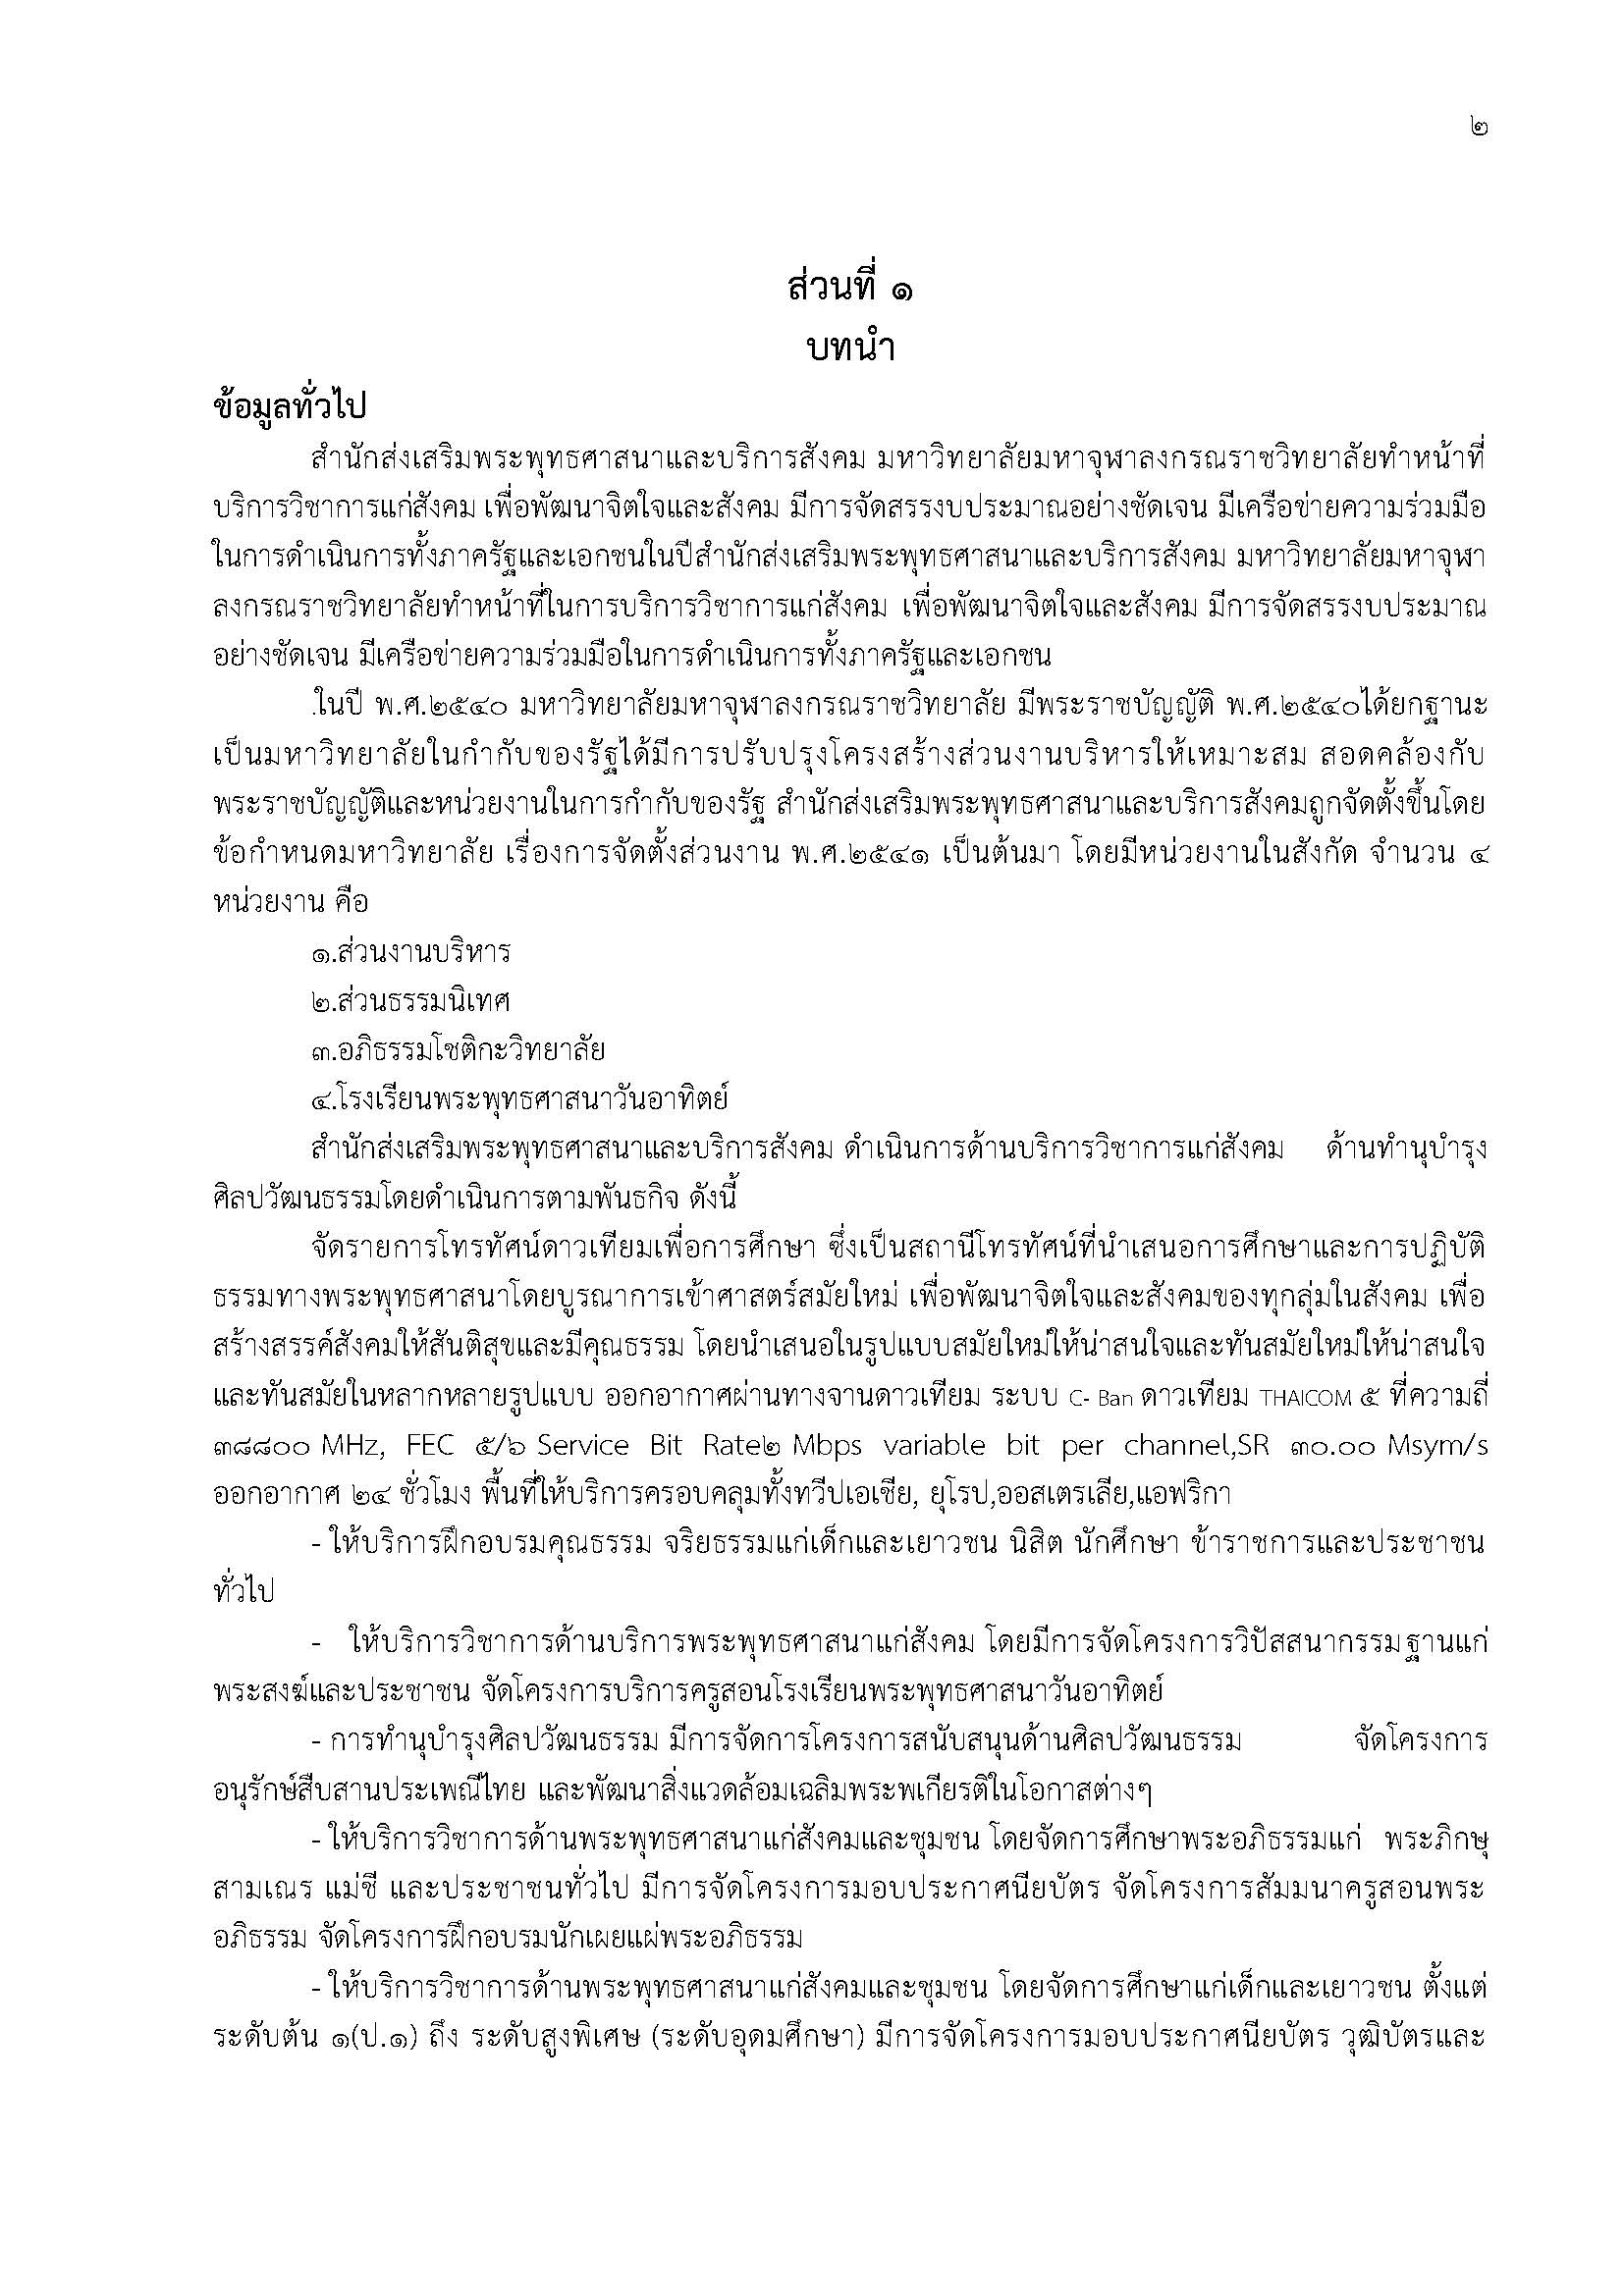 QC_Page_02